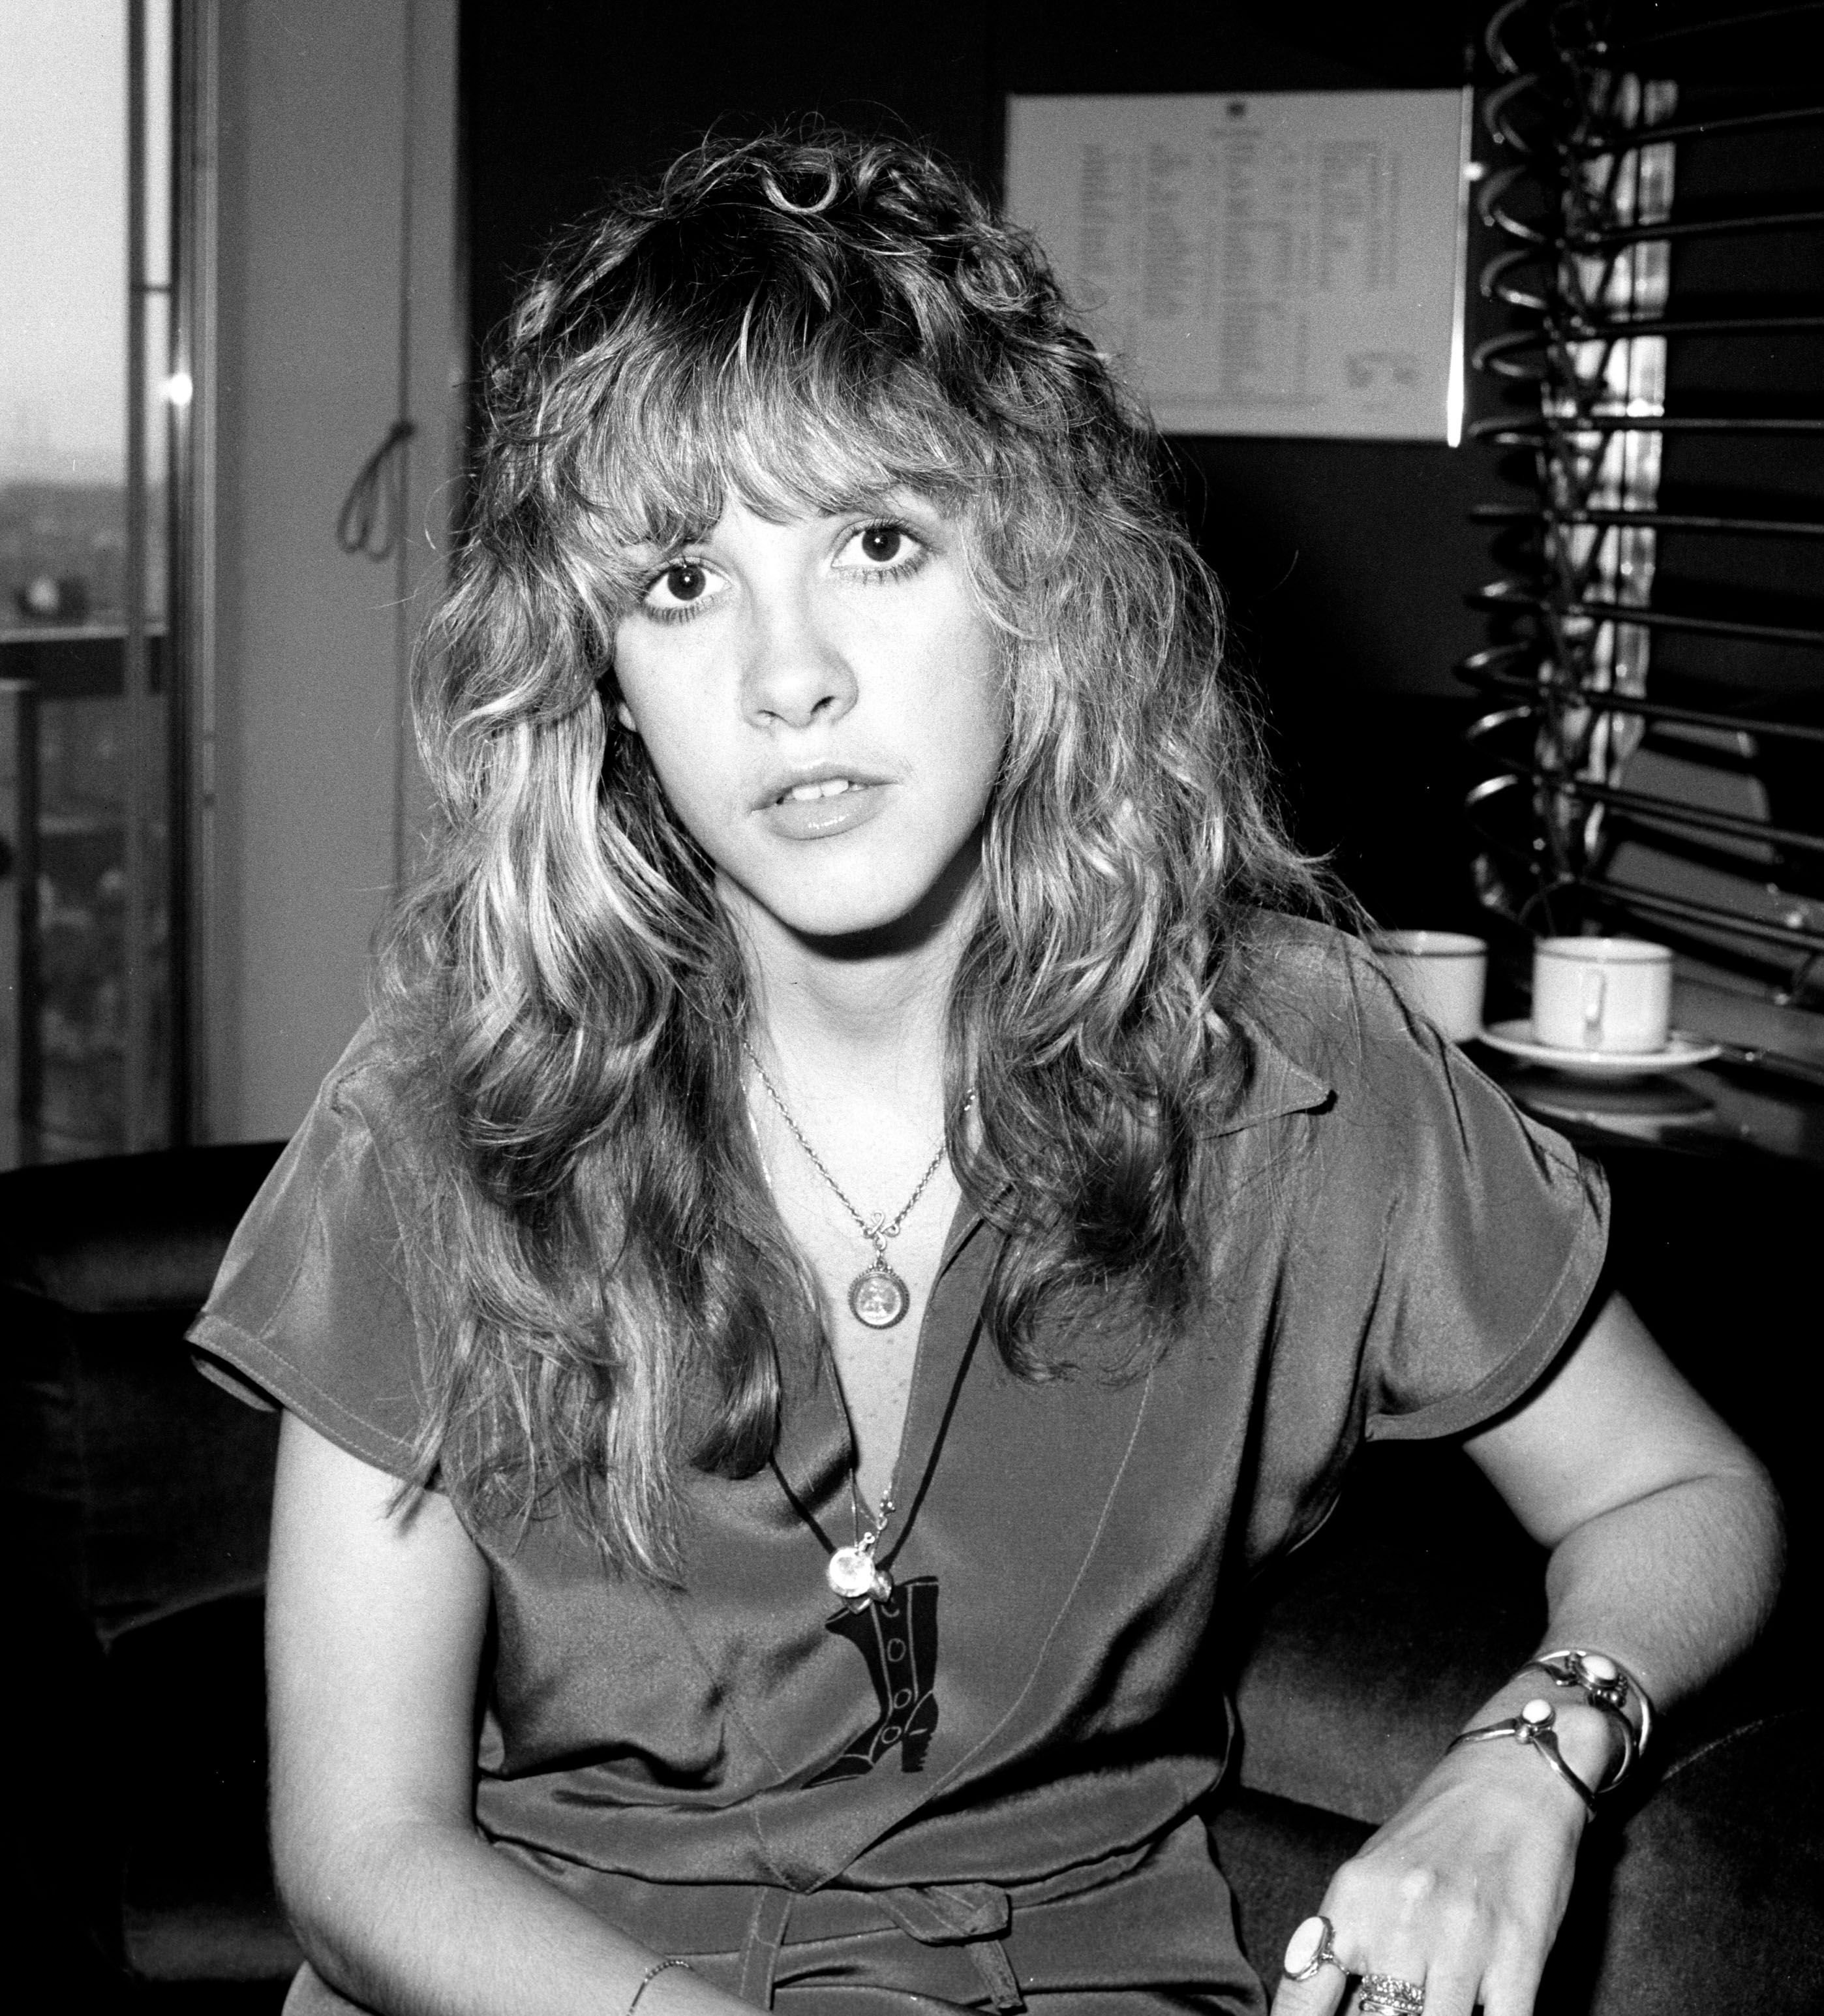 Fleetwood Mac singer Stevie Nicks in 1977 | Source: Getty Images